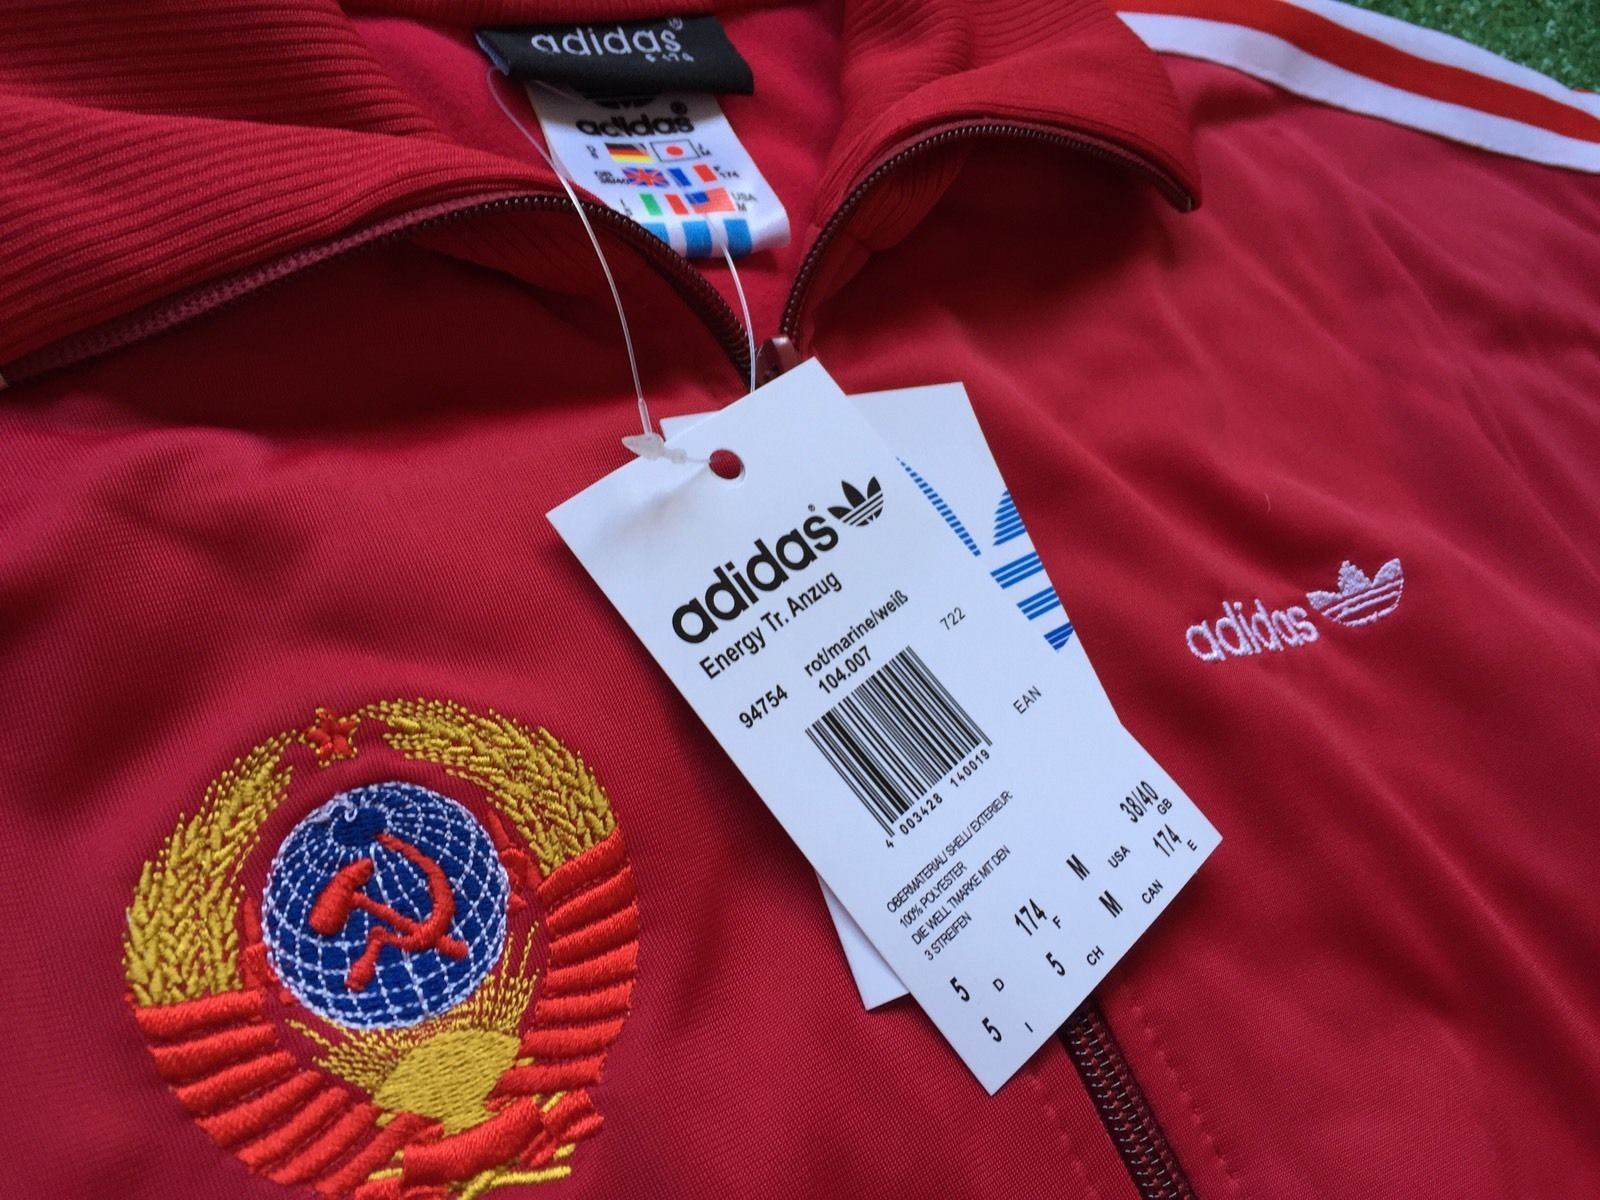 ADIDAS W.Germany VTG tracksuit MOSCOW80 Pants and jackets USSR OLYMPIAD80 dac56bd8f45